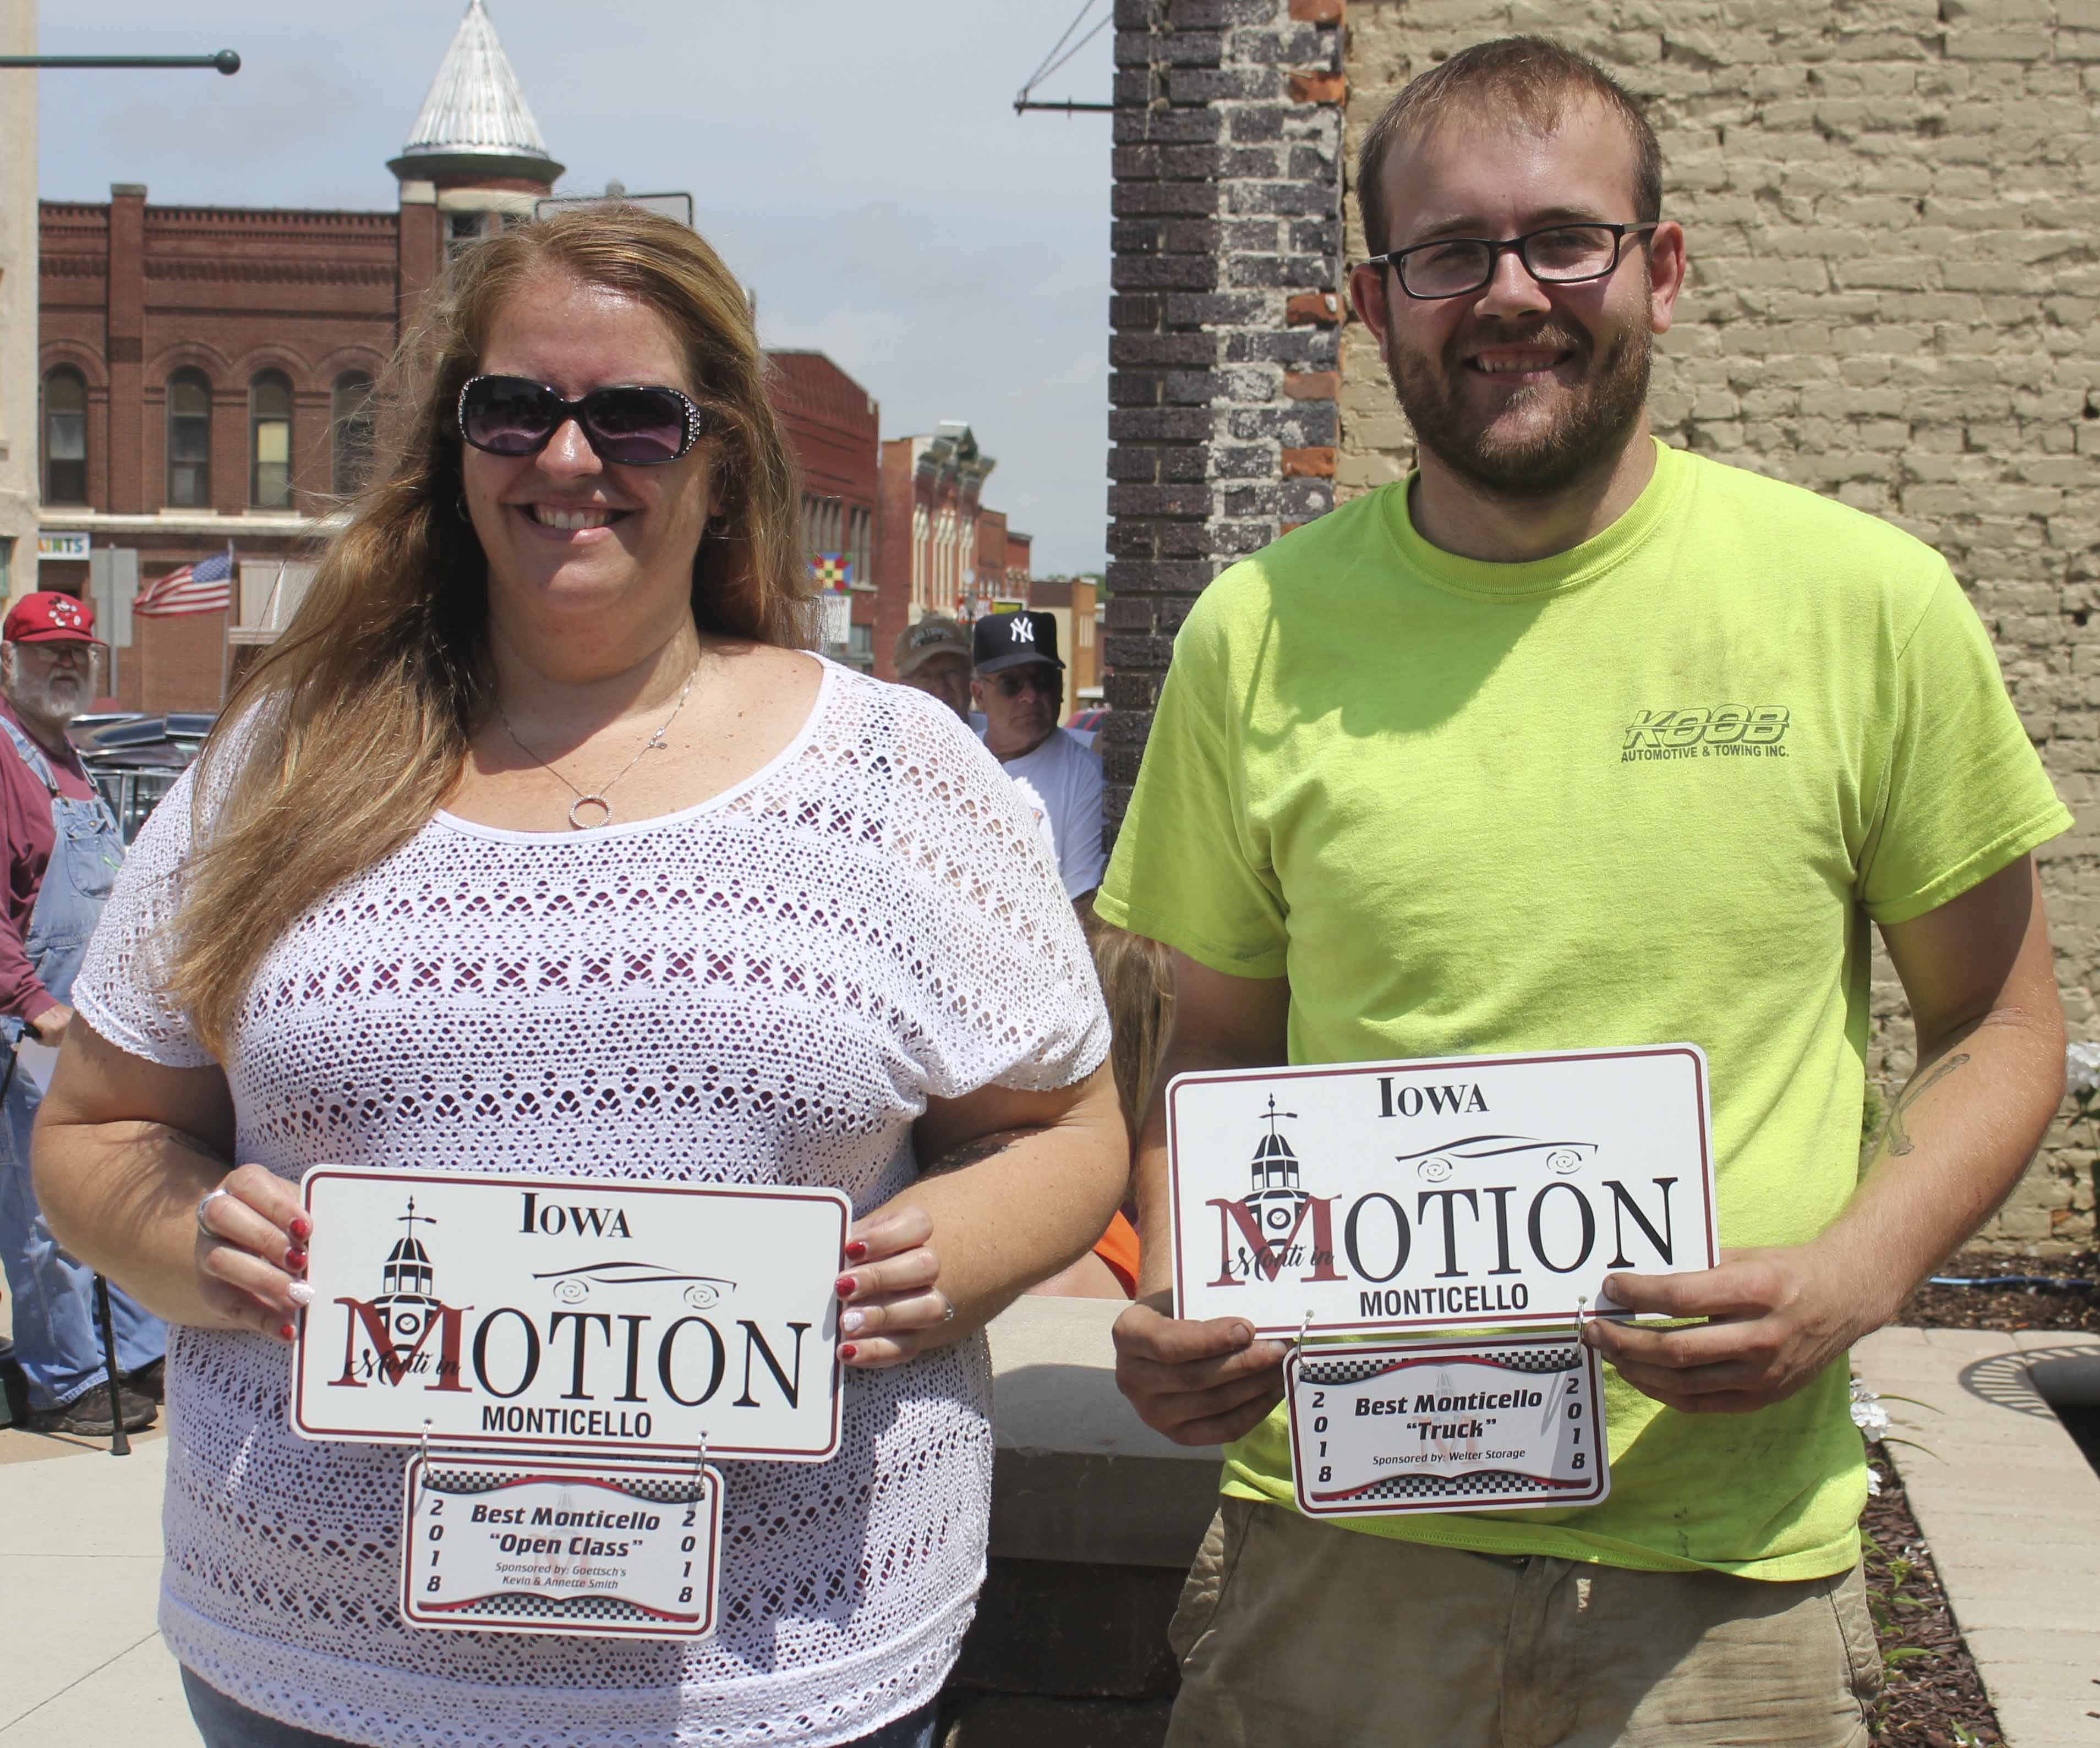 Among the award-winners at Monti in Motion were Denise Nealson of Monticello (left) in the Monticello Open Class for her 1979 Pontiac, and Jacob Clark of Monticello in the Monticello Truck Class for his 1989 Chevy.